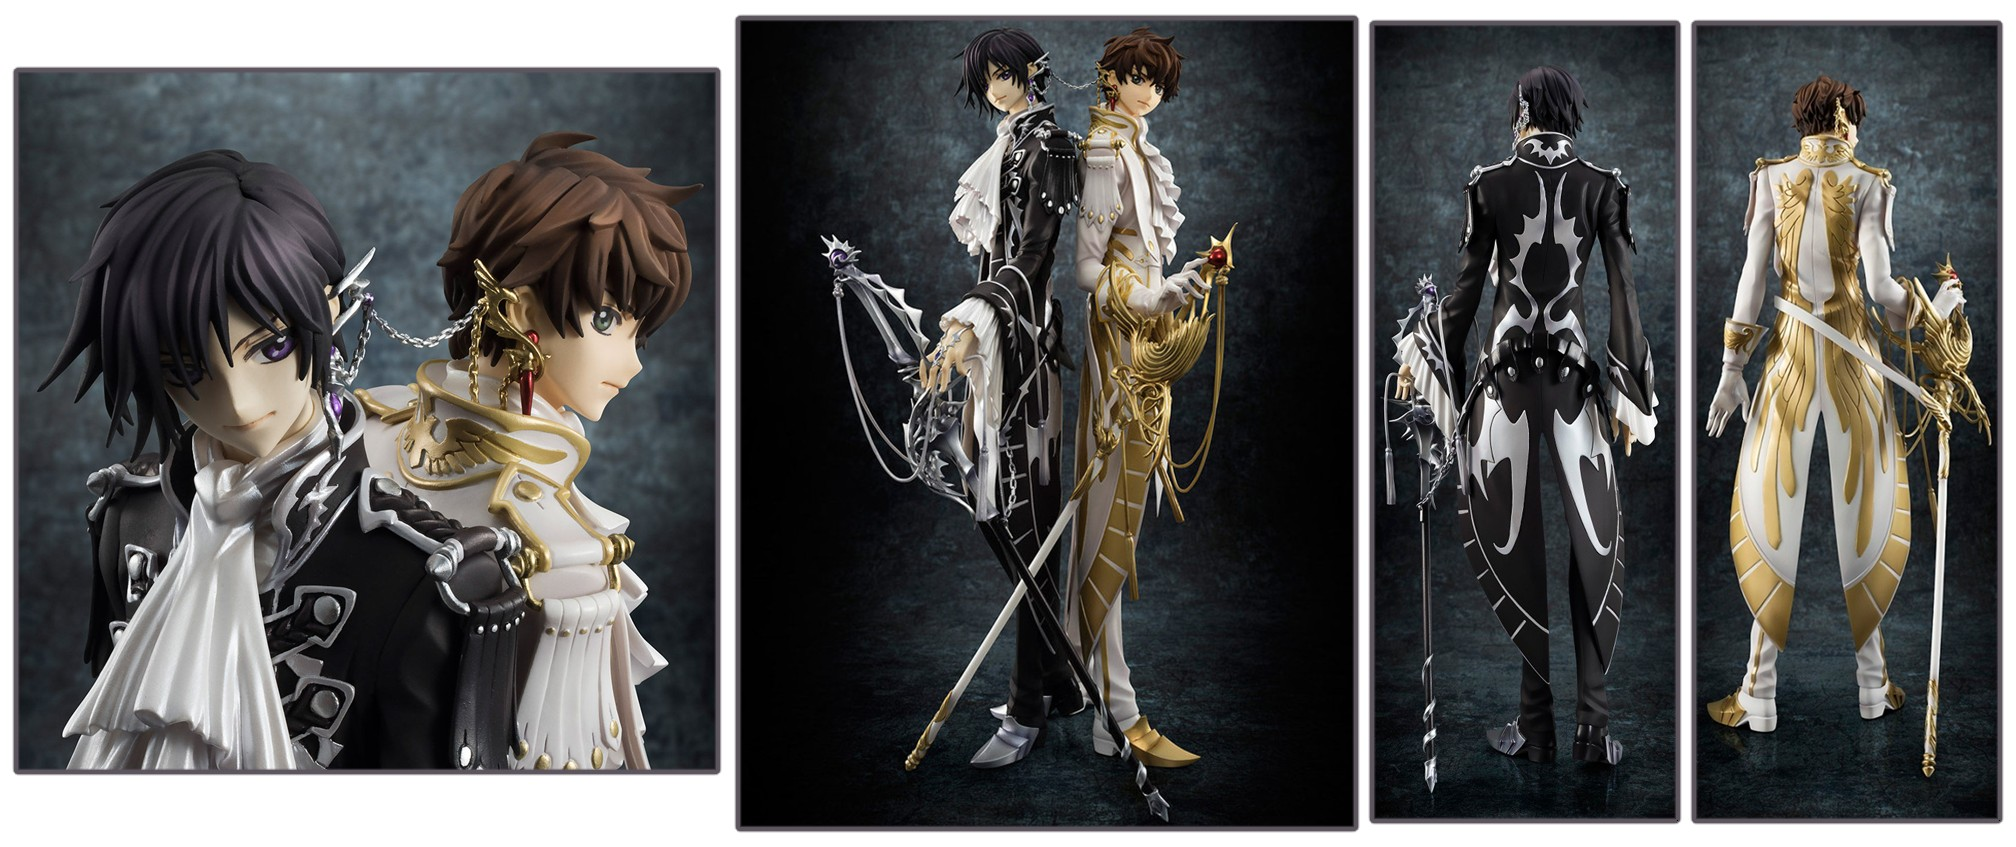 MegaHouse – G.E.M.: Code Geass 1/8-scale Lelouch & Suzaku Set (March 2018)